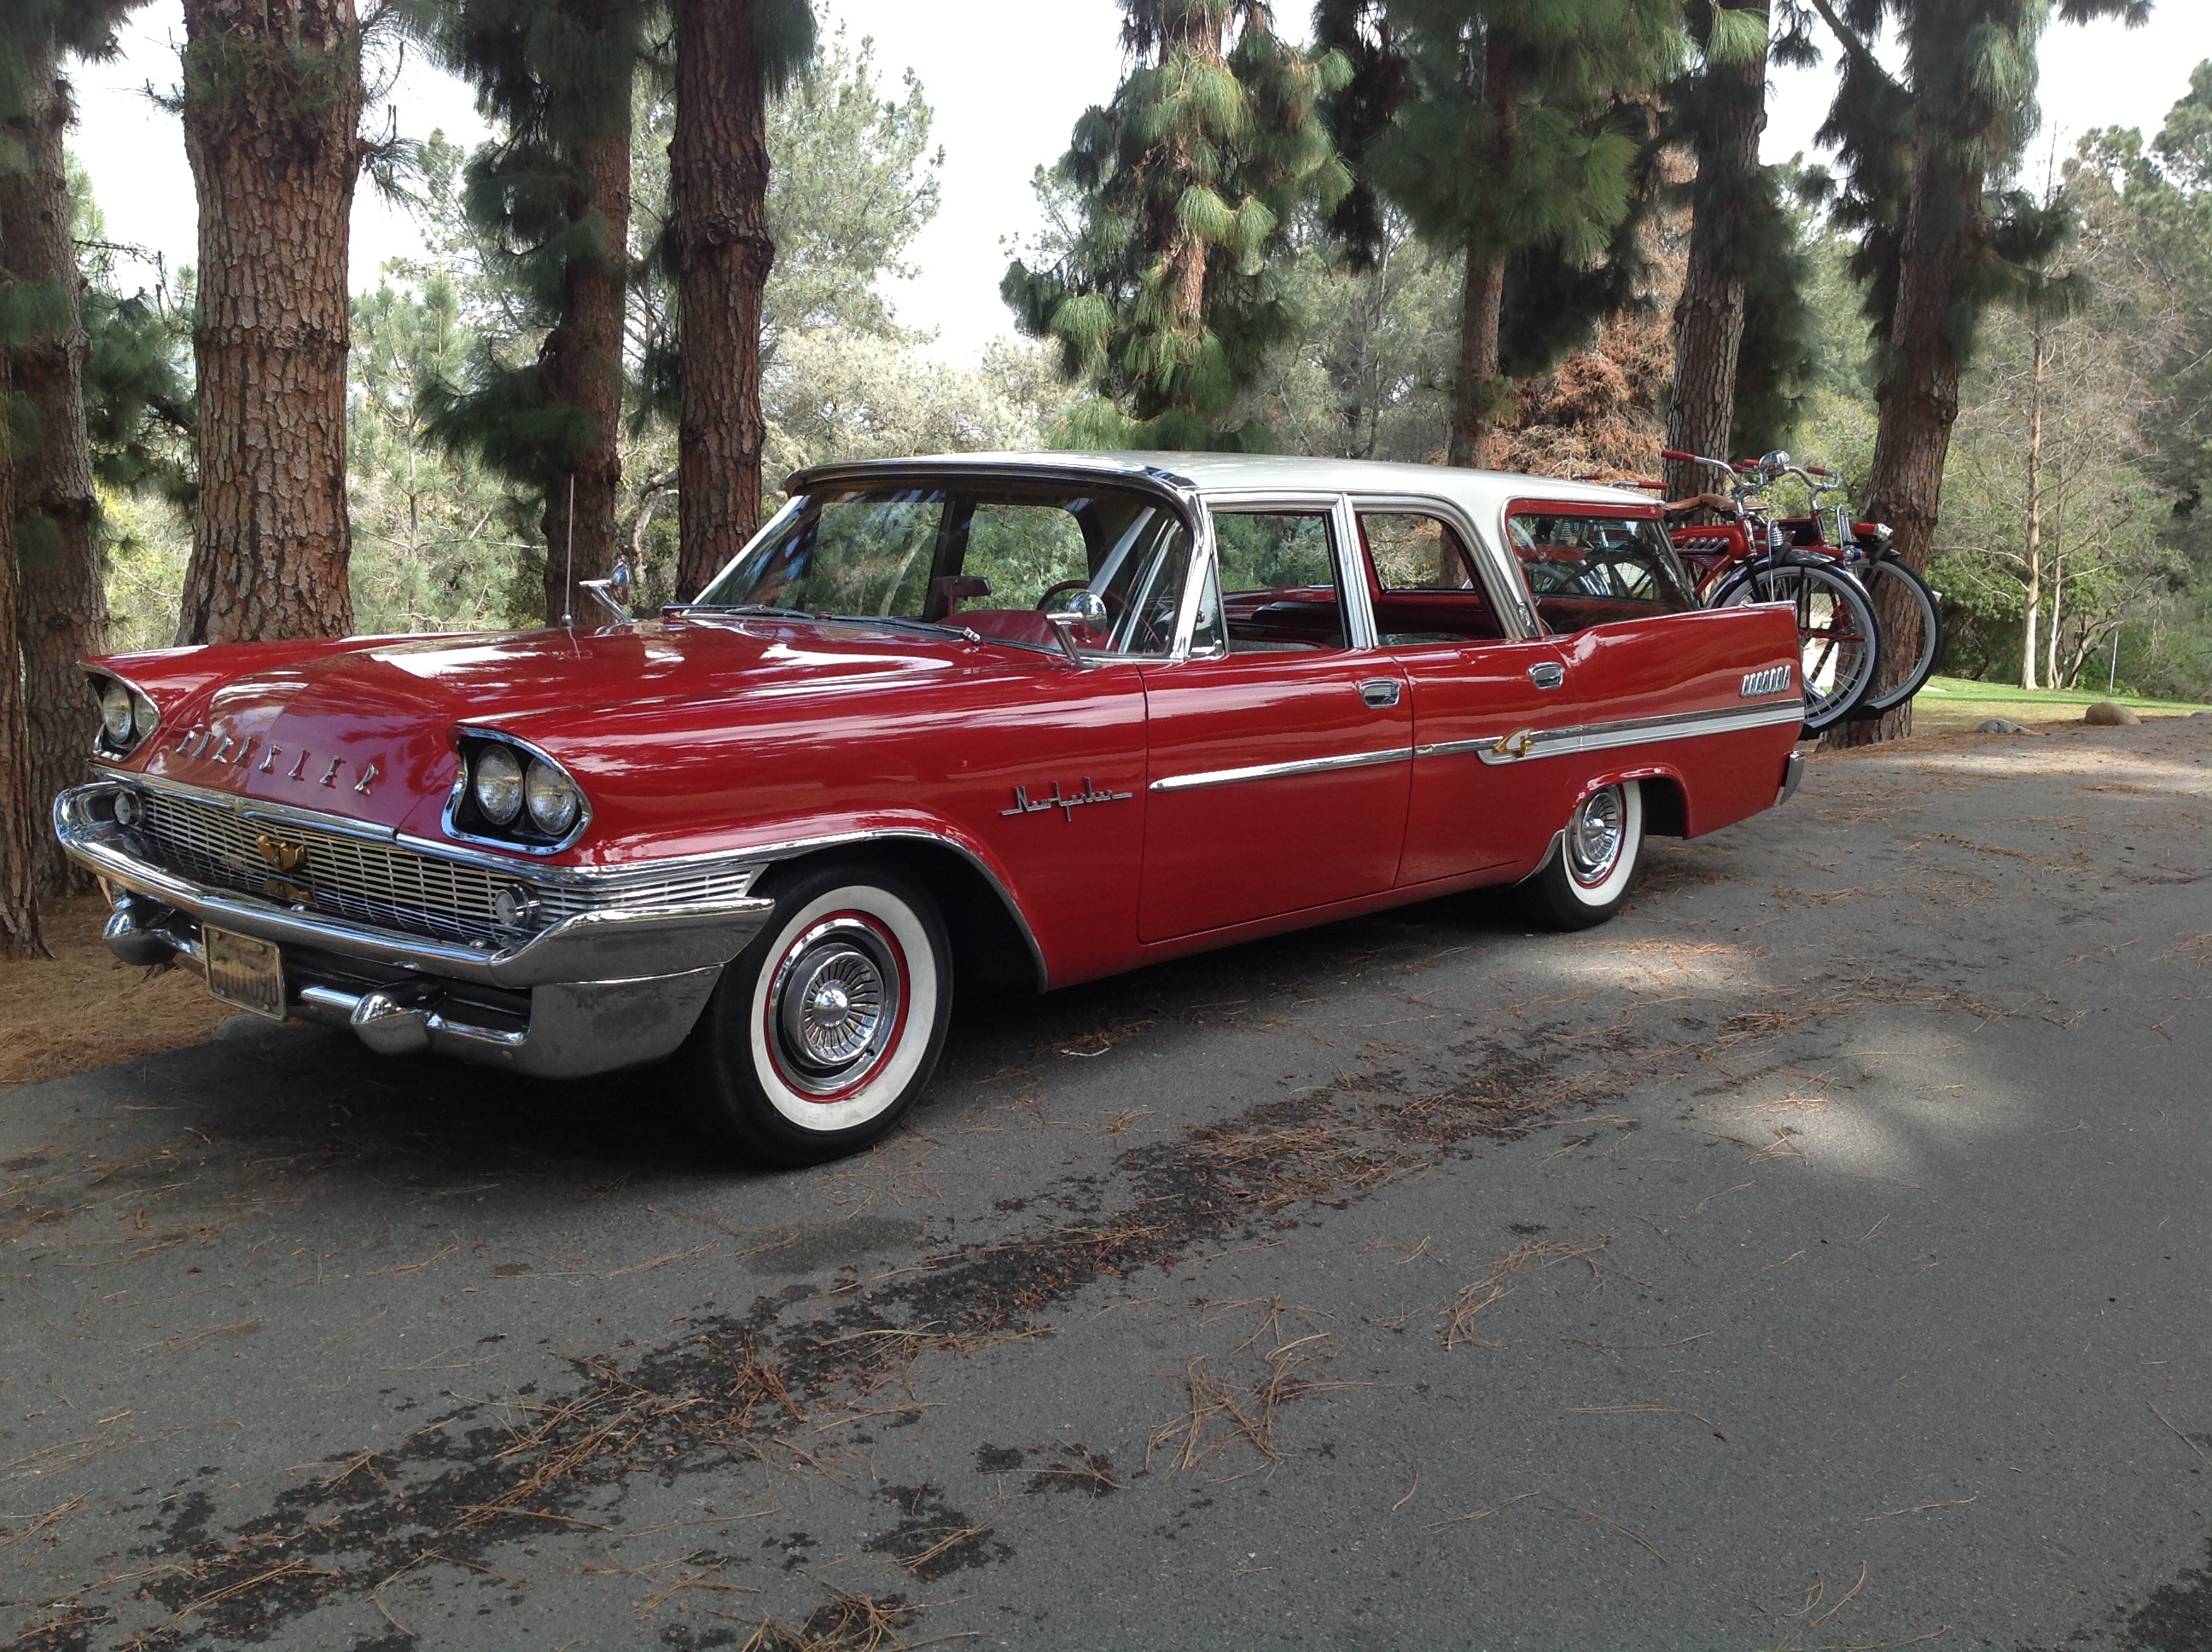 1962 chrysler newport town and country wagon 1960 to 1969 pinterest station wagon cars and mopar